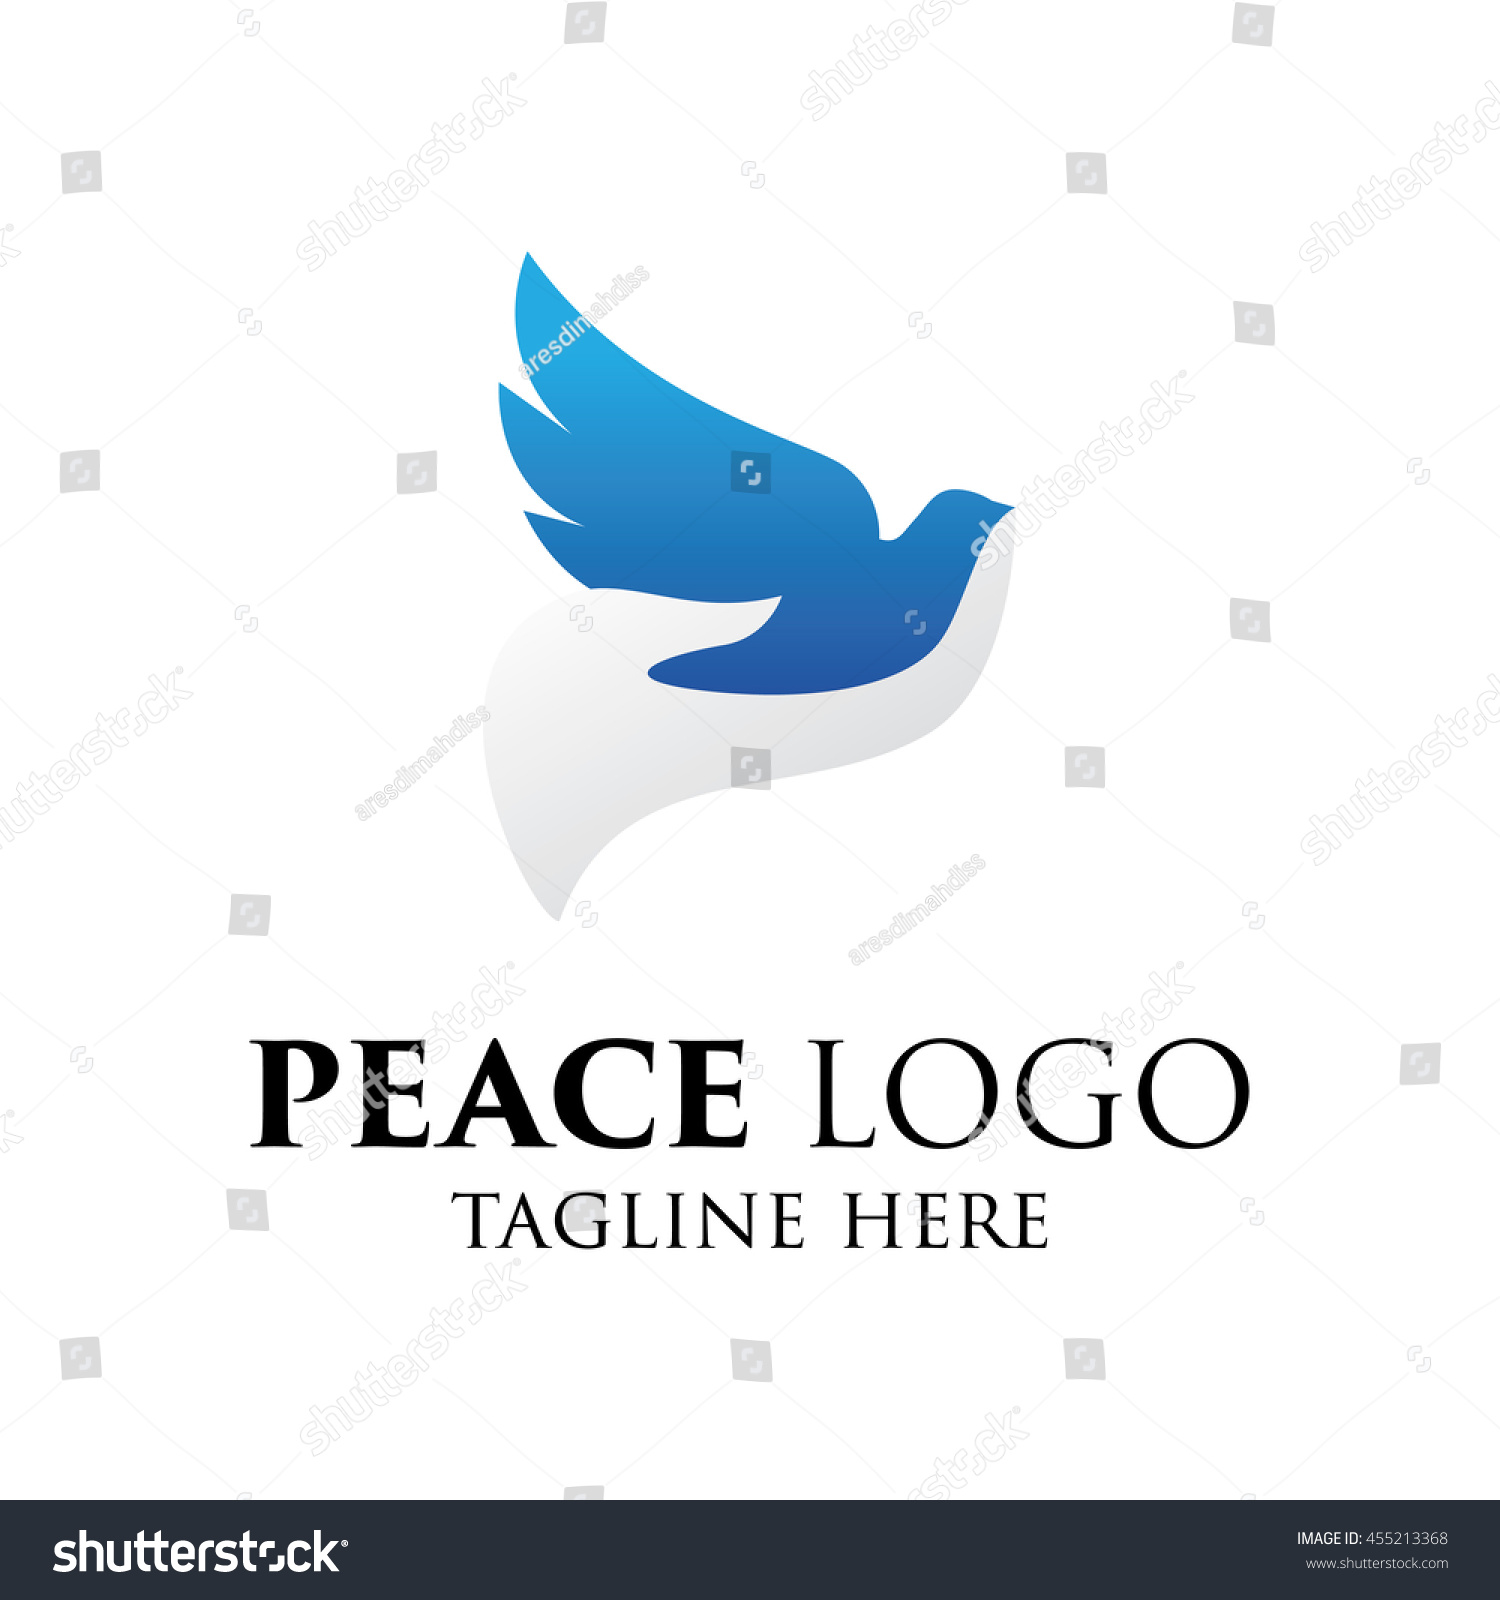 Peace logo template world peace symbol stock vector 455213368 peace logo template world peace symbol biocorpaavc